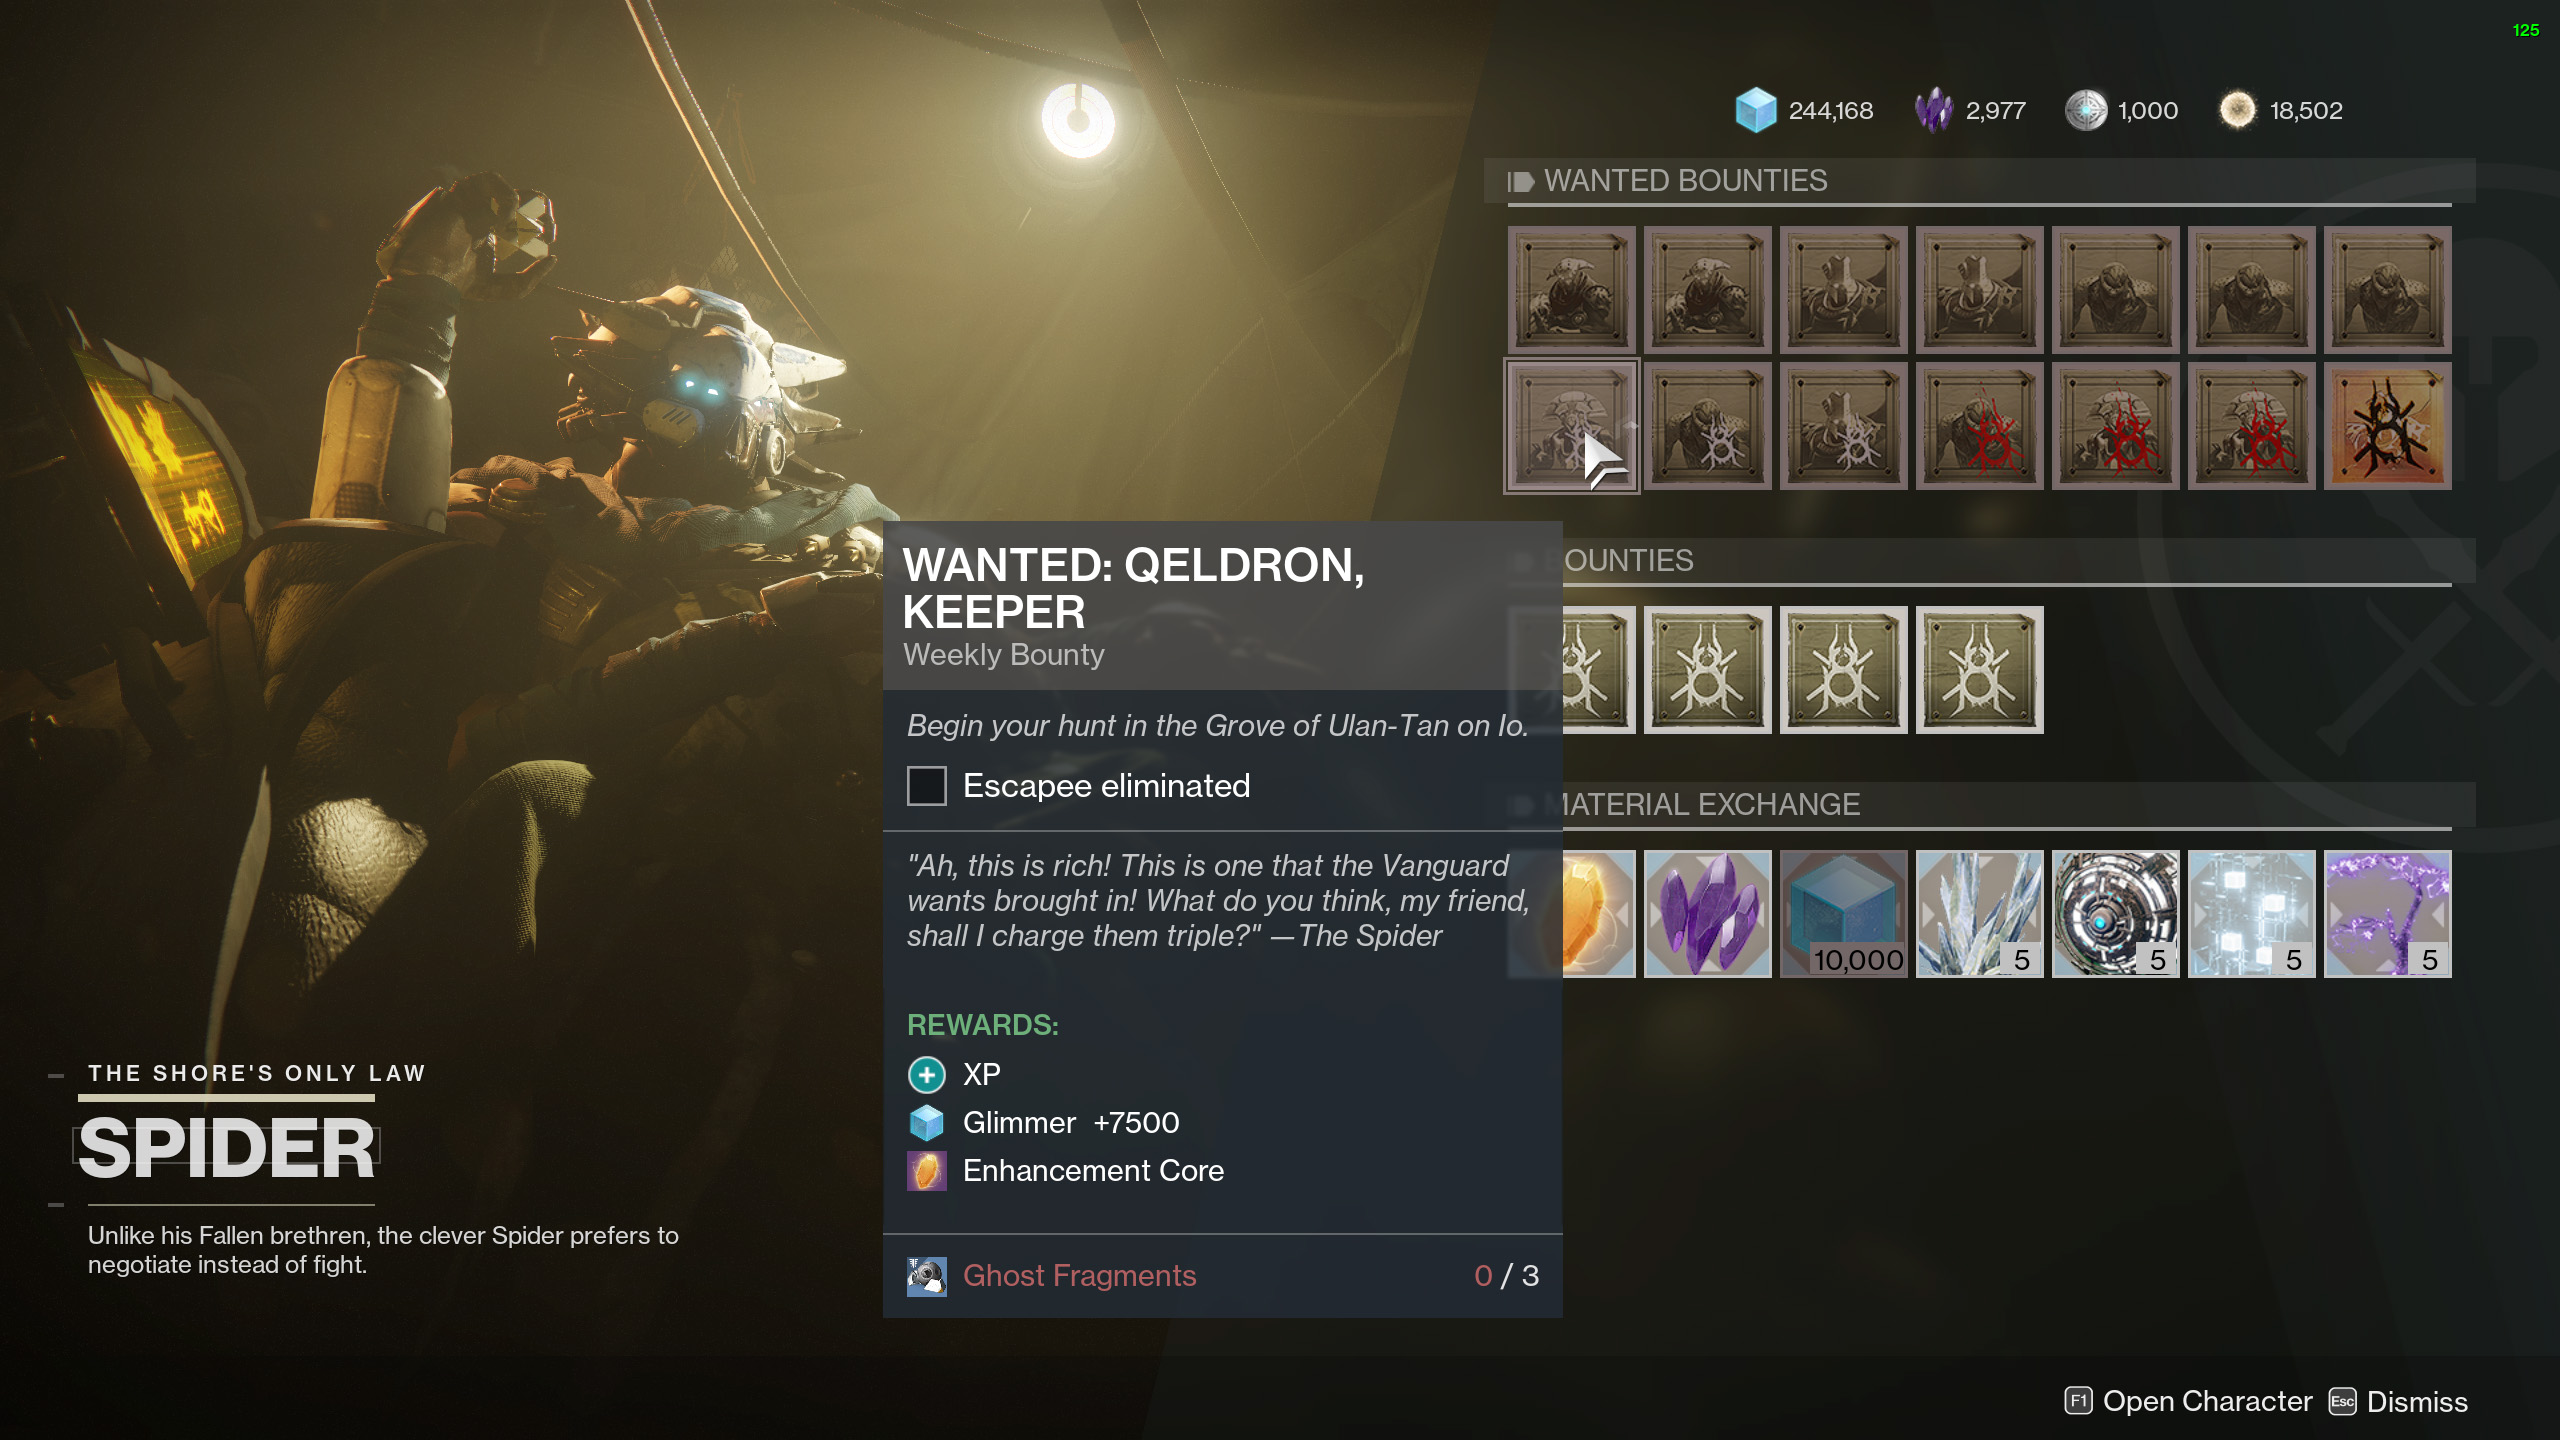 Qeldron Keeper wanted bounty Destiny 2